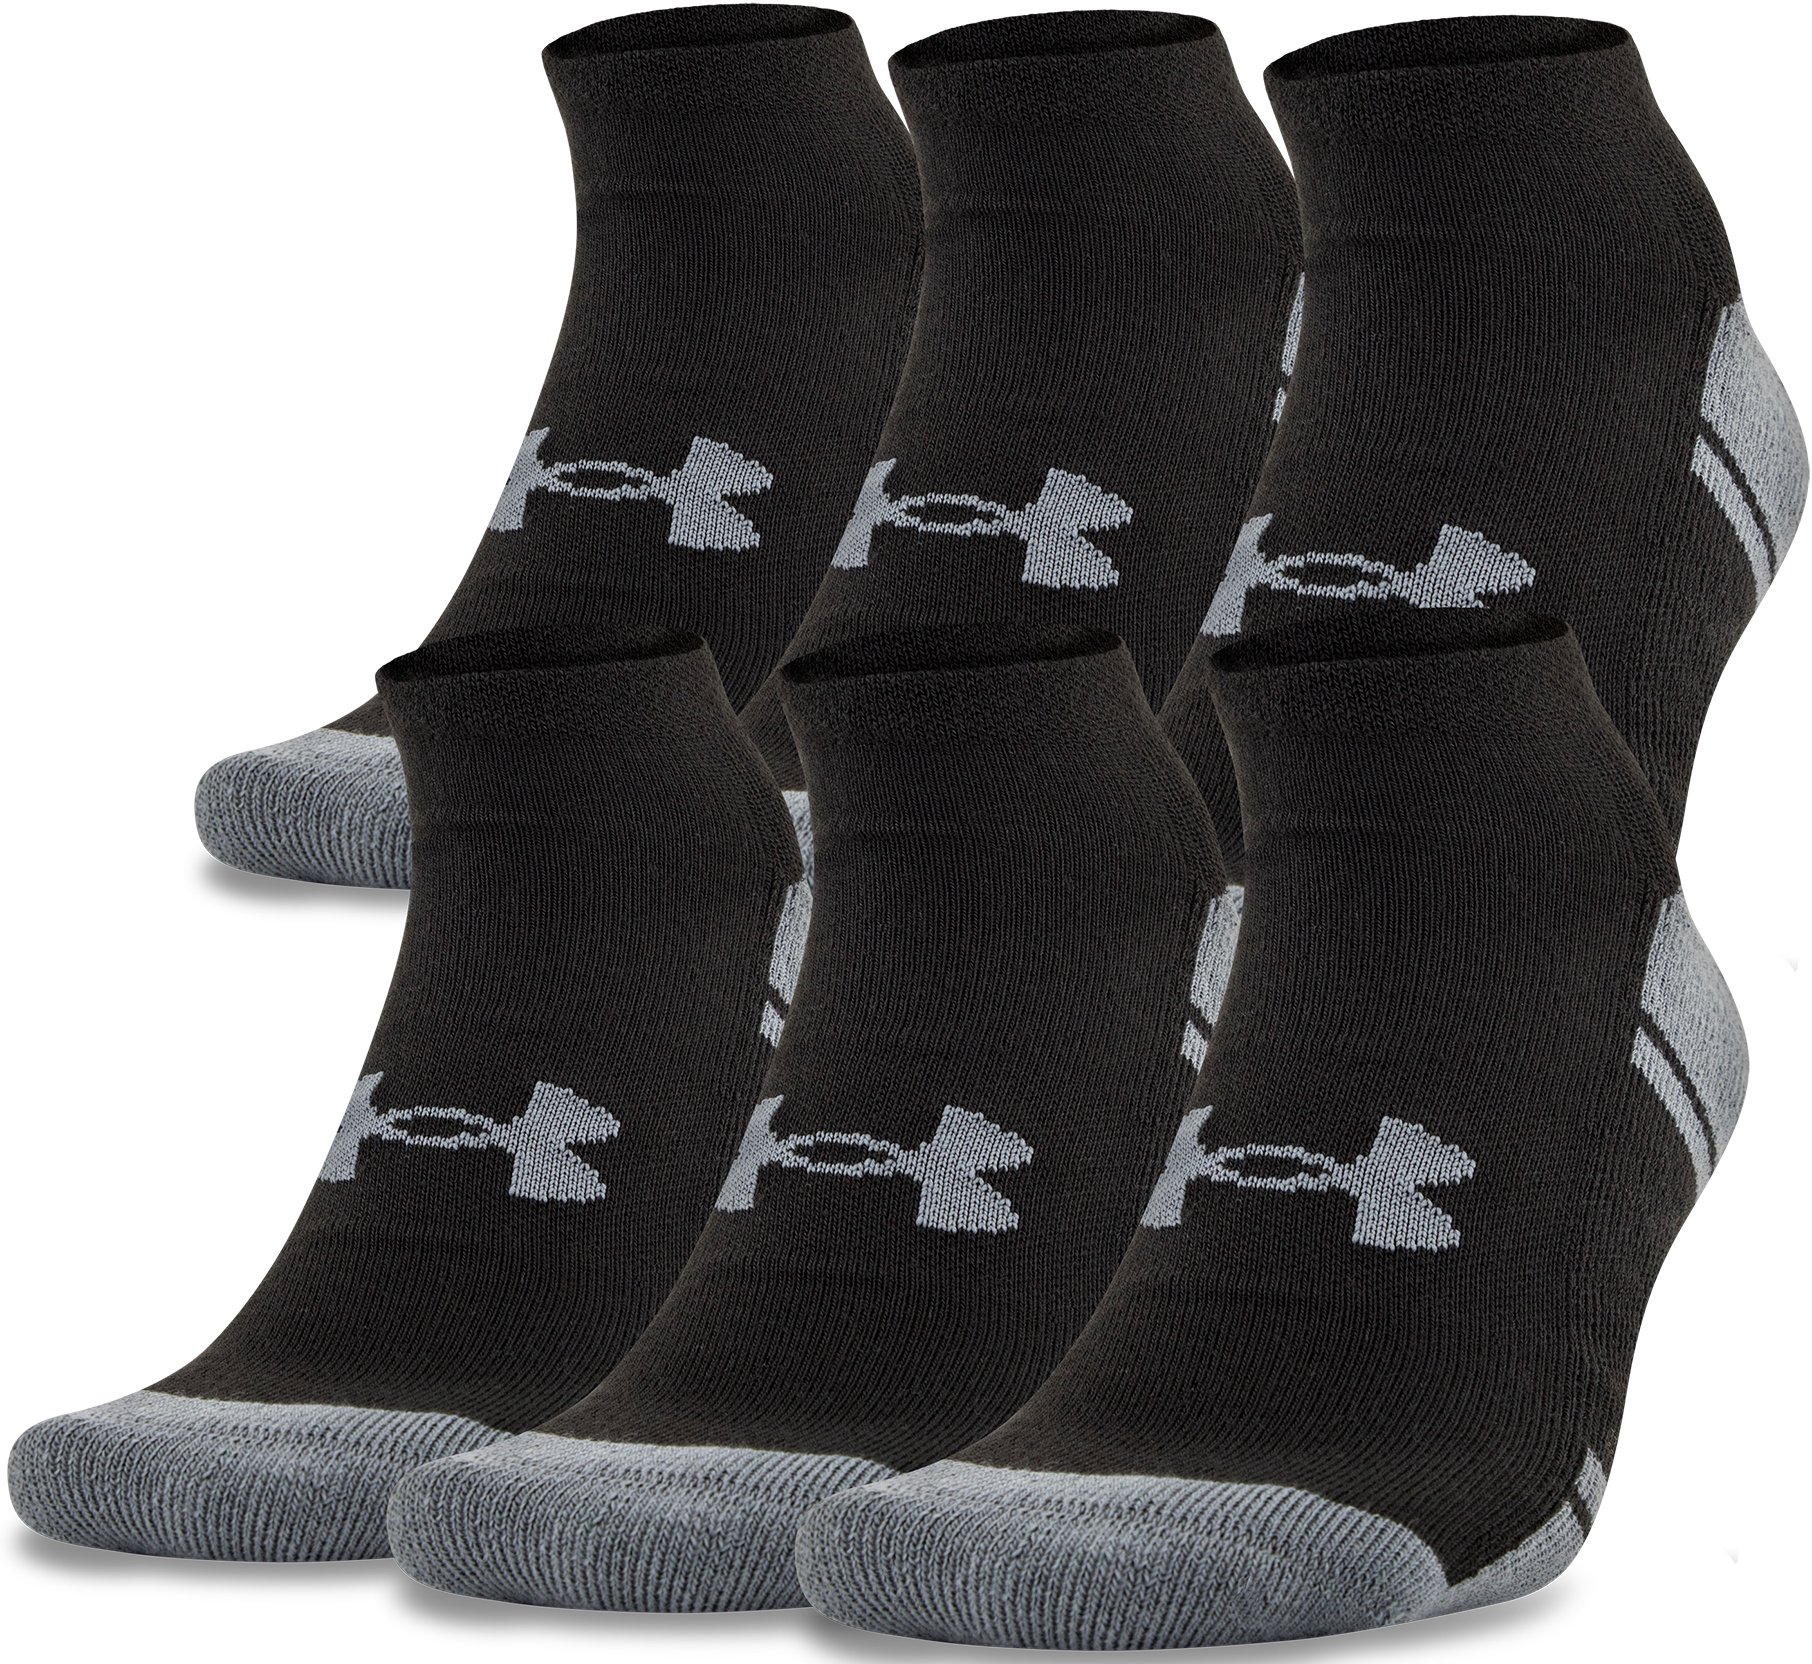 UA Resistor III No Show Socks – 6-Pack, Black